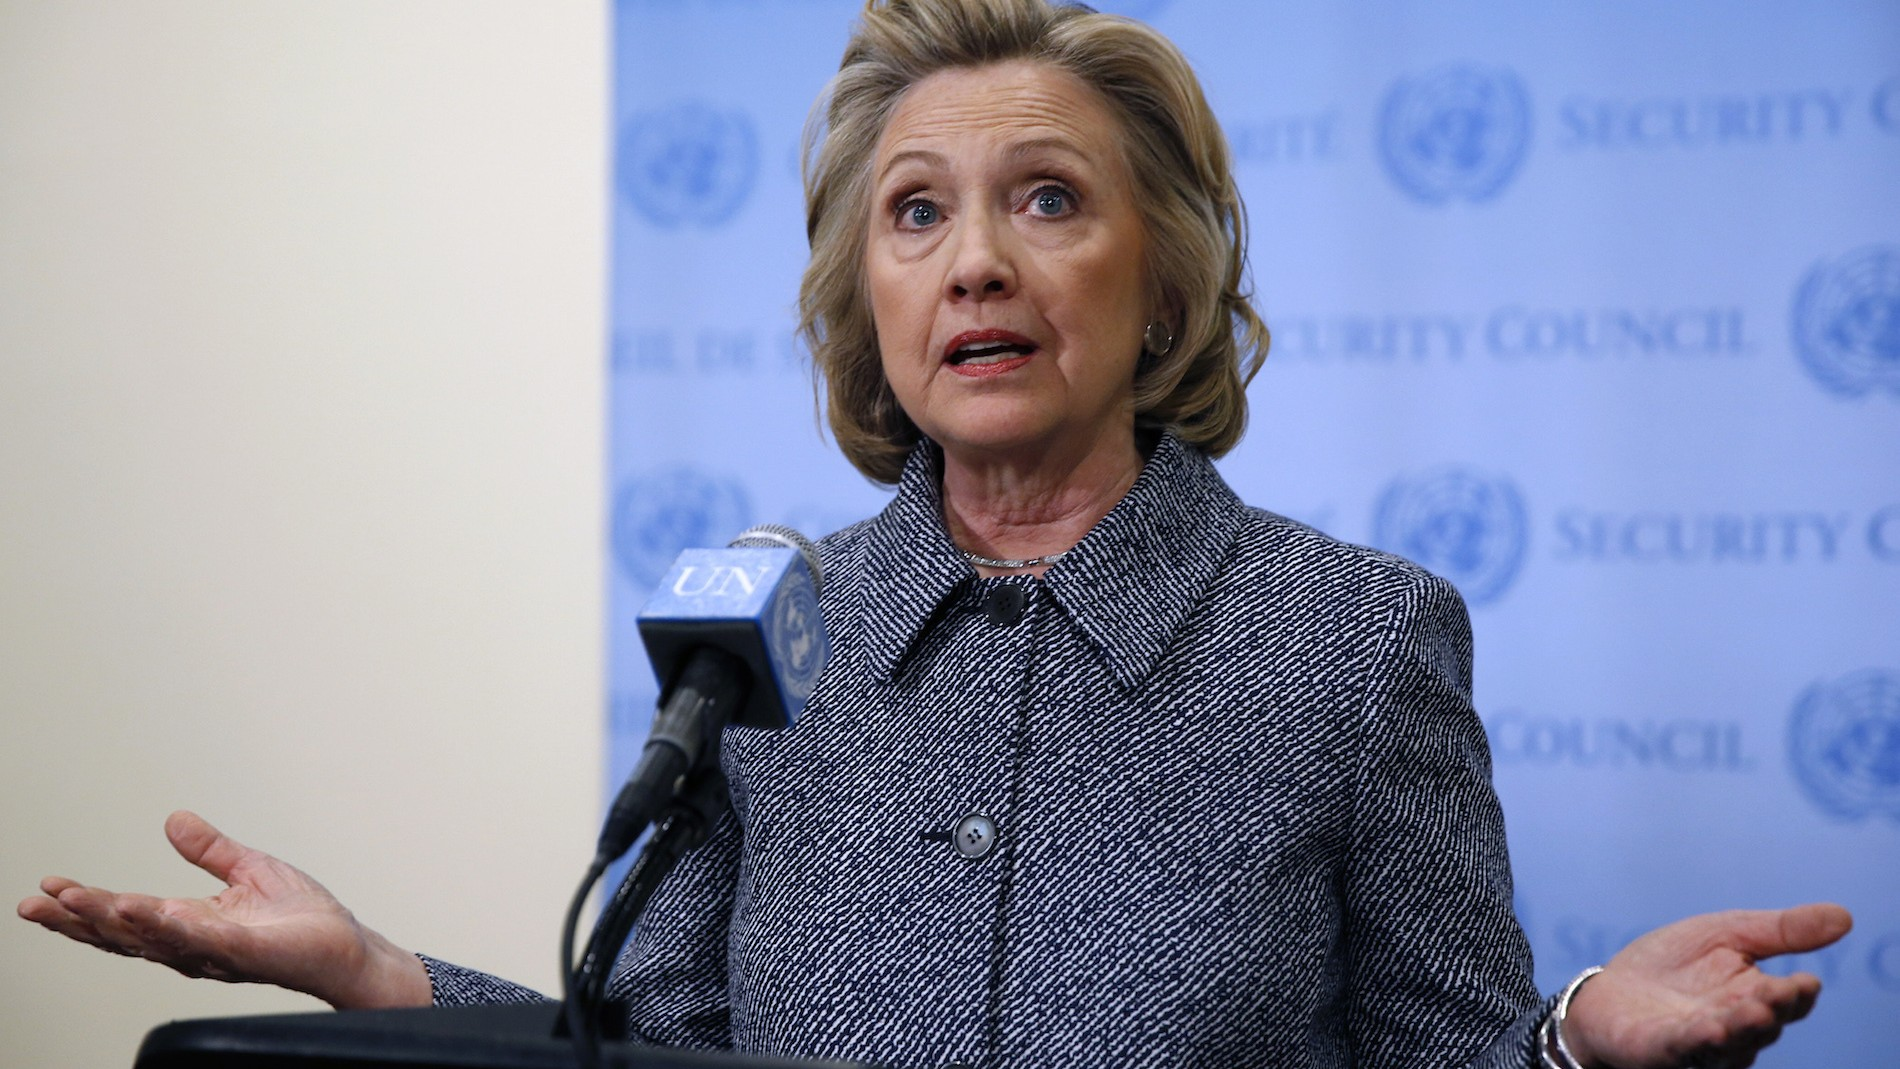 Why Hillary Clinton won't do a press conference